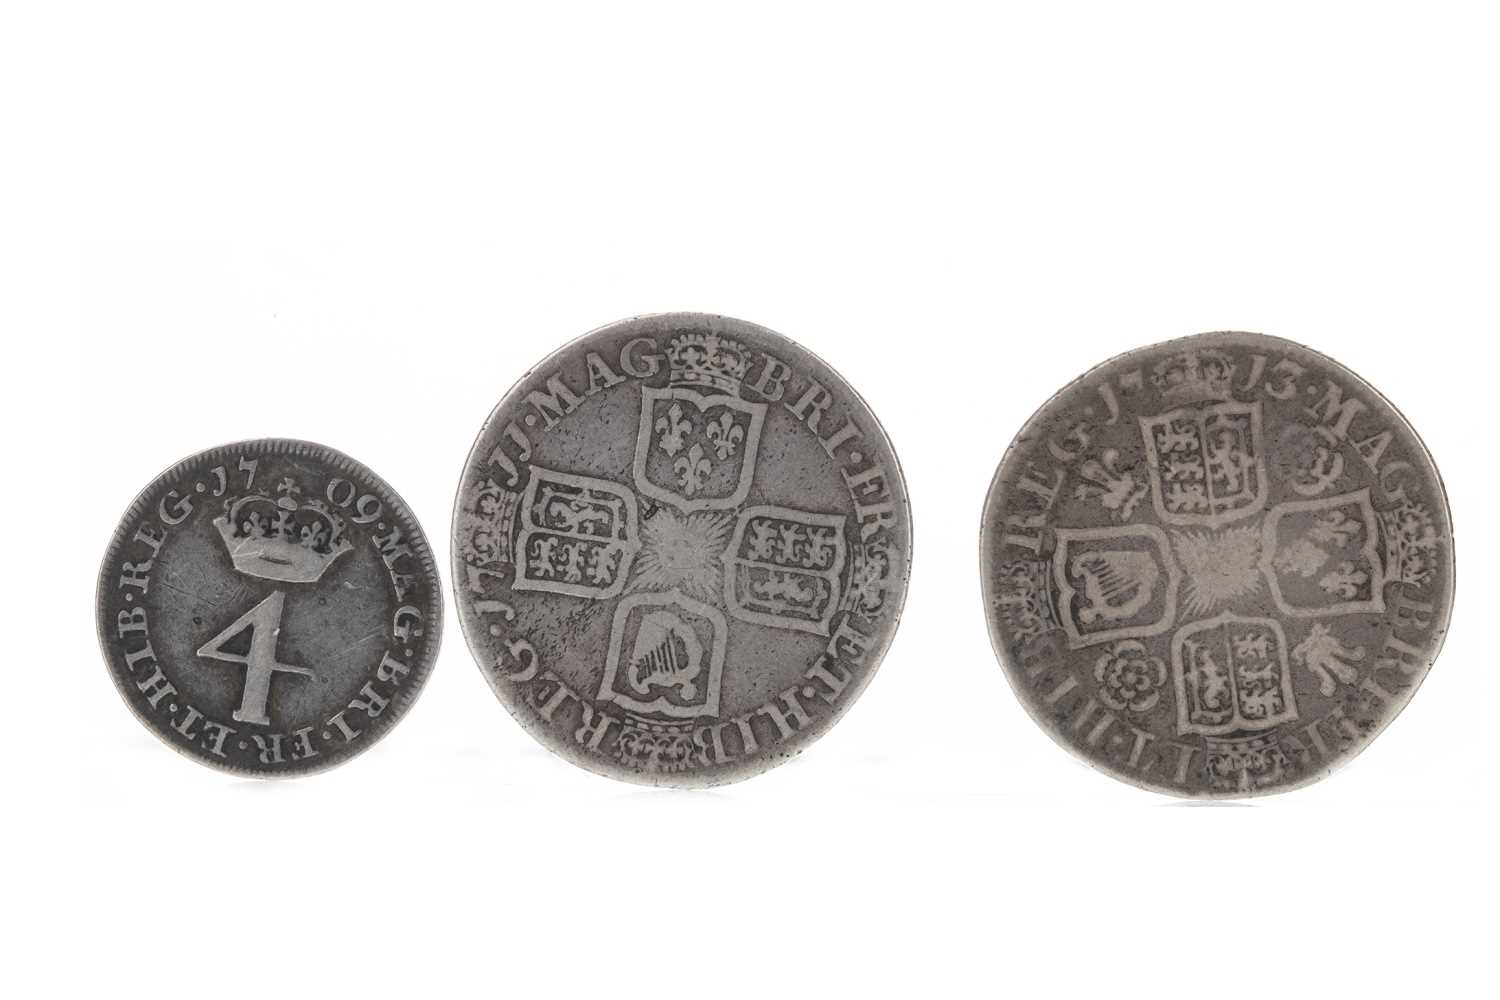 Lot 133 - ENGLAND - QUEEN ANNE (1702 - 1714) SHILLING DATED 1713